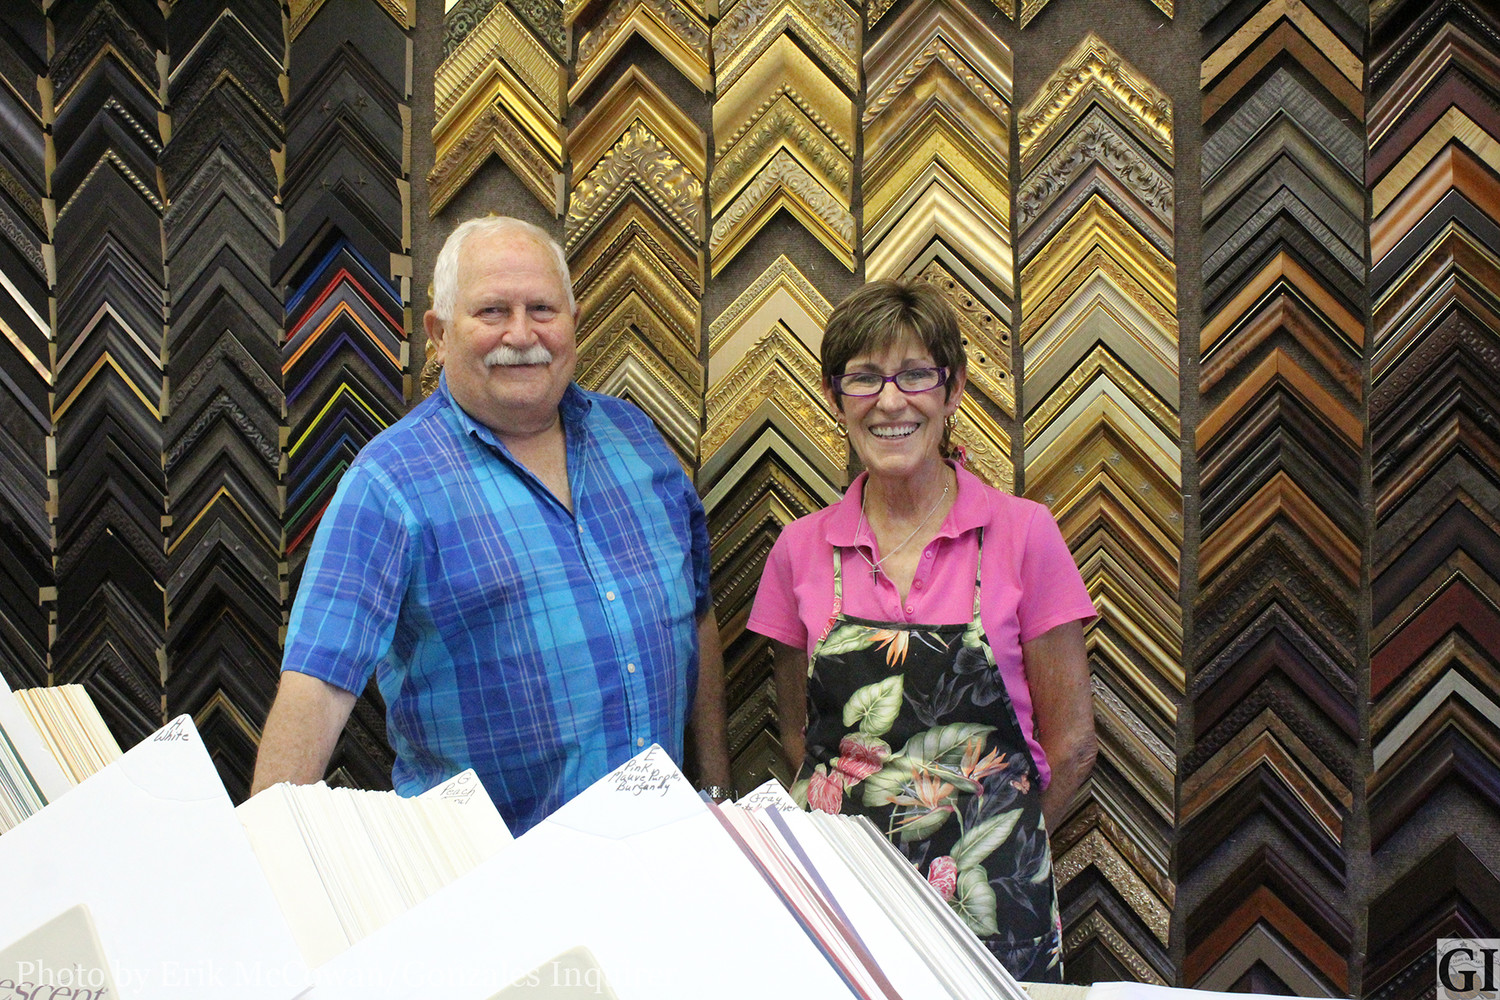 Elgin Heinemeyer (left) and Terry Towns (right) have been business partners at Frames and Things for over 16 years, providing quality custom picture framing for Gonzales County.